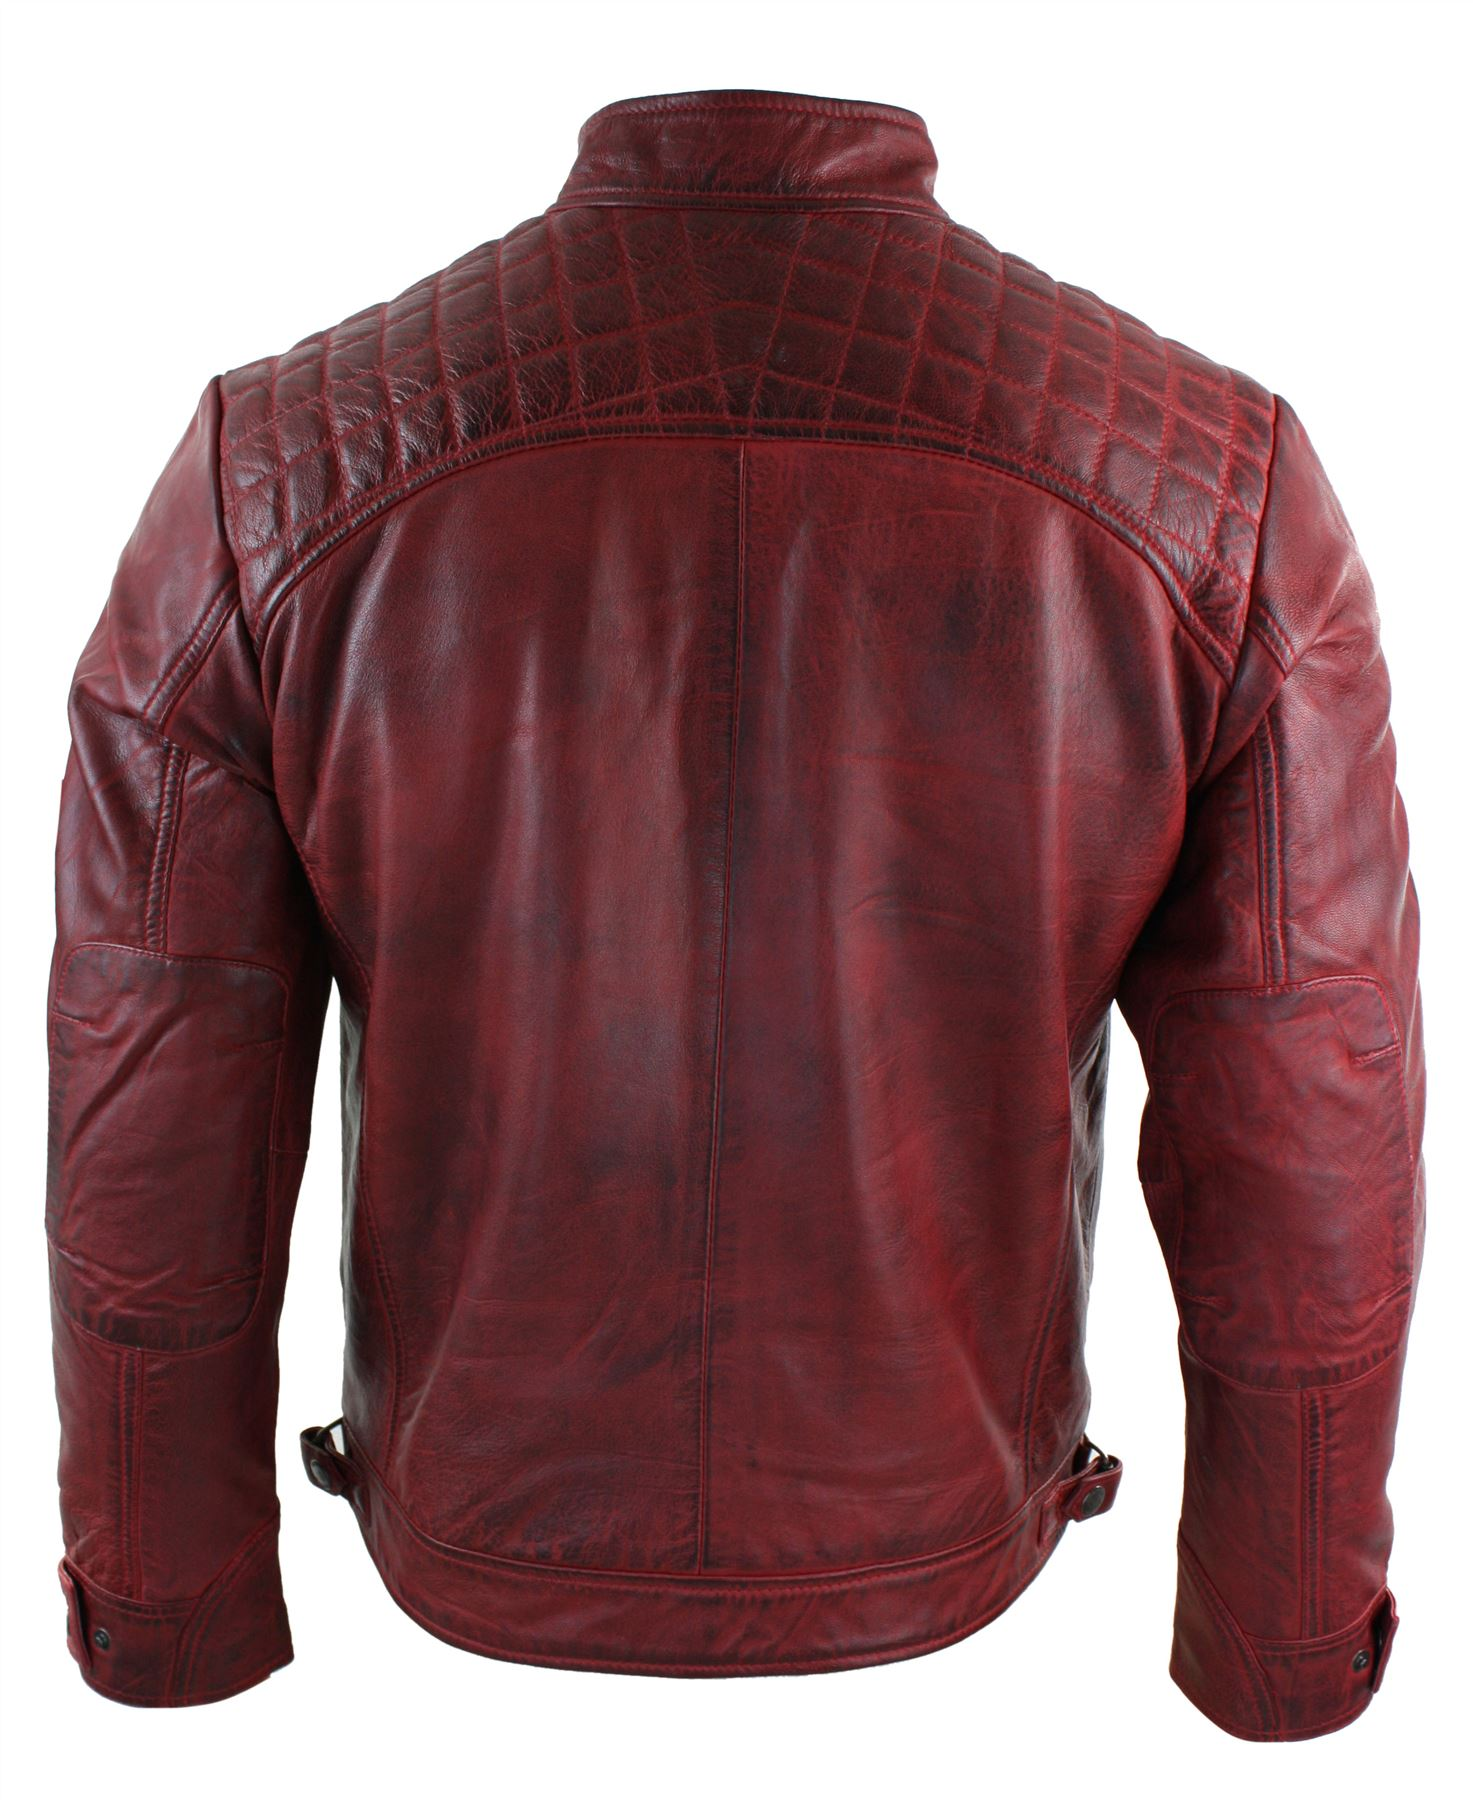 Mens-Retro-Style-Zipped-Biker-Jacket-Real-Leather-Soft-Black-Casual